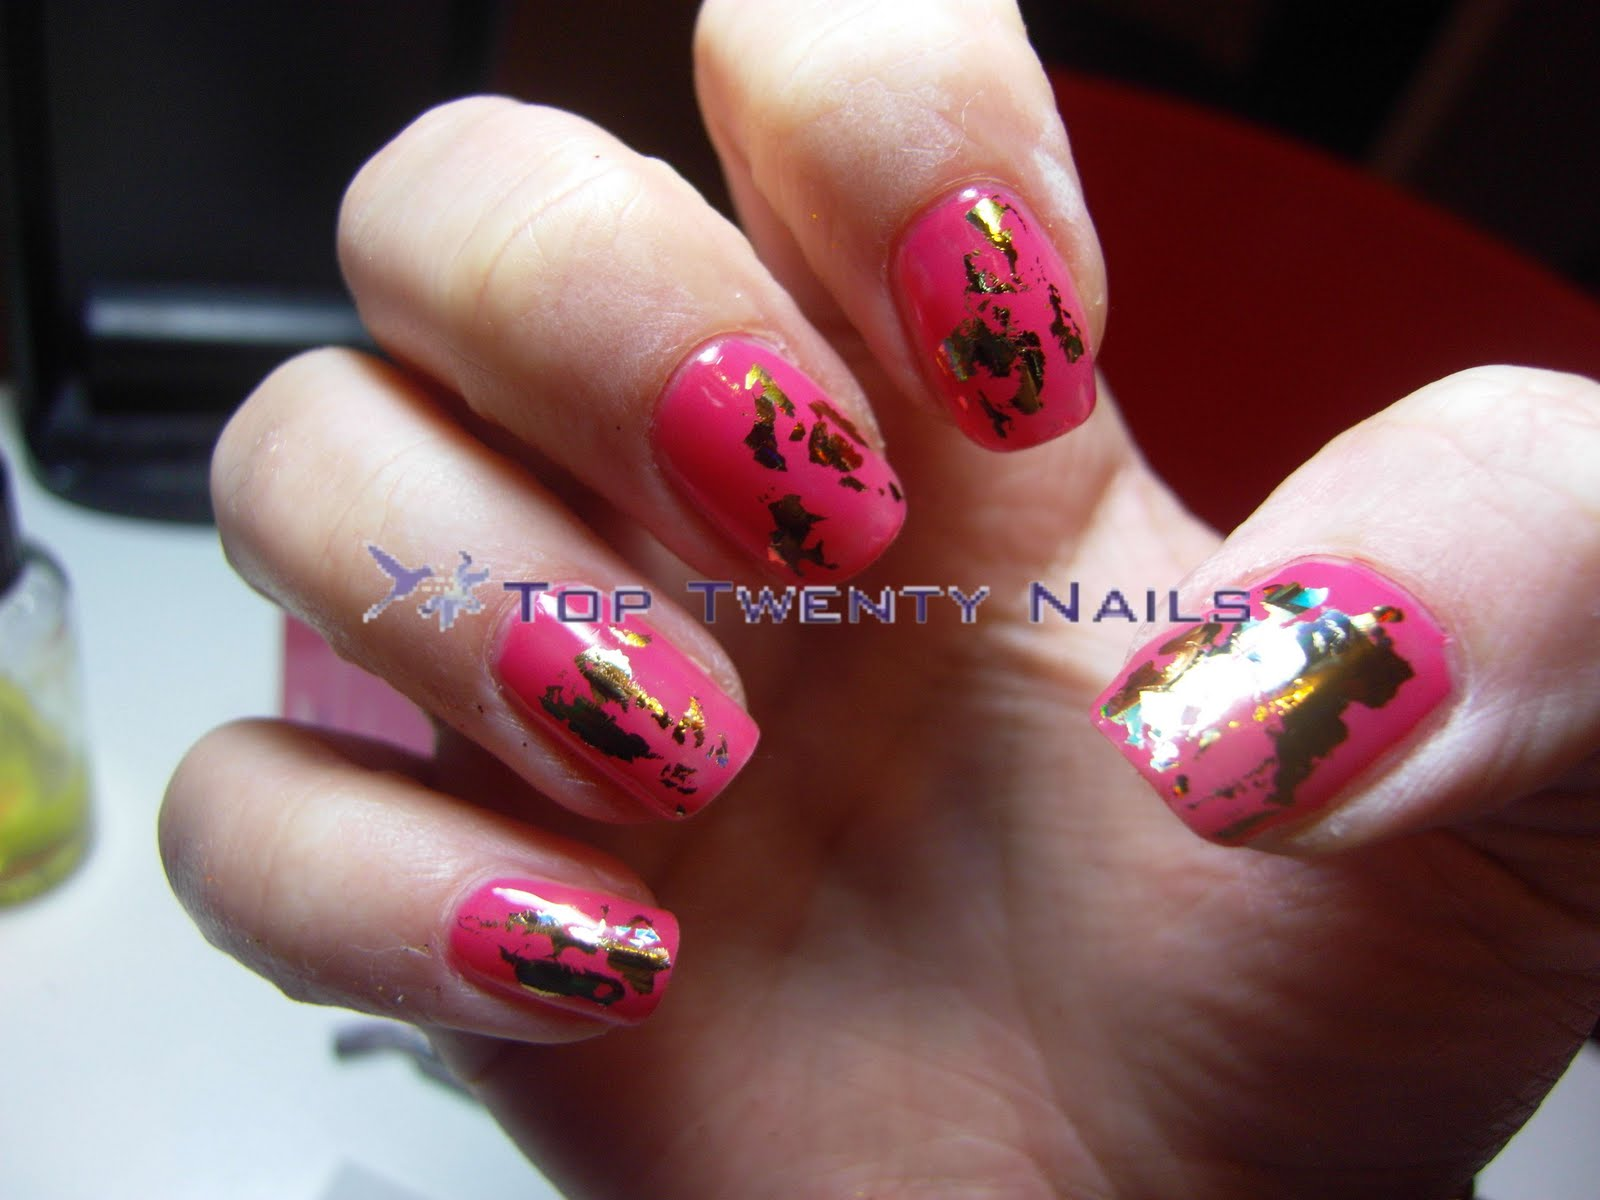 Toptwentynails Shellac Rockstar Nails With Gold Foil Shatter Effect